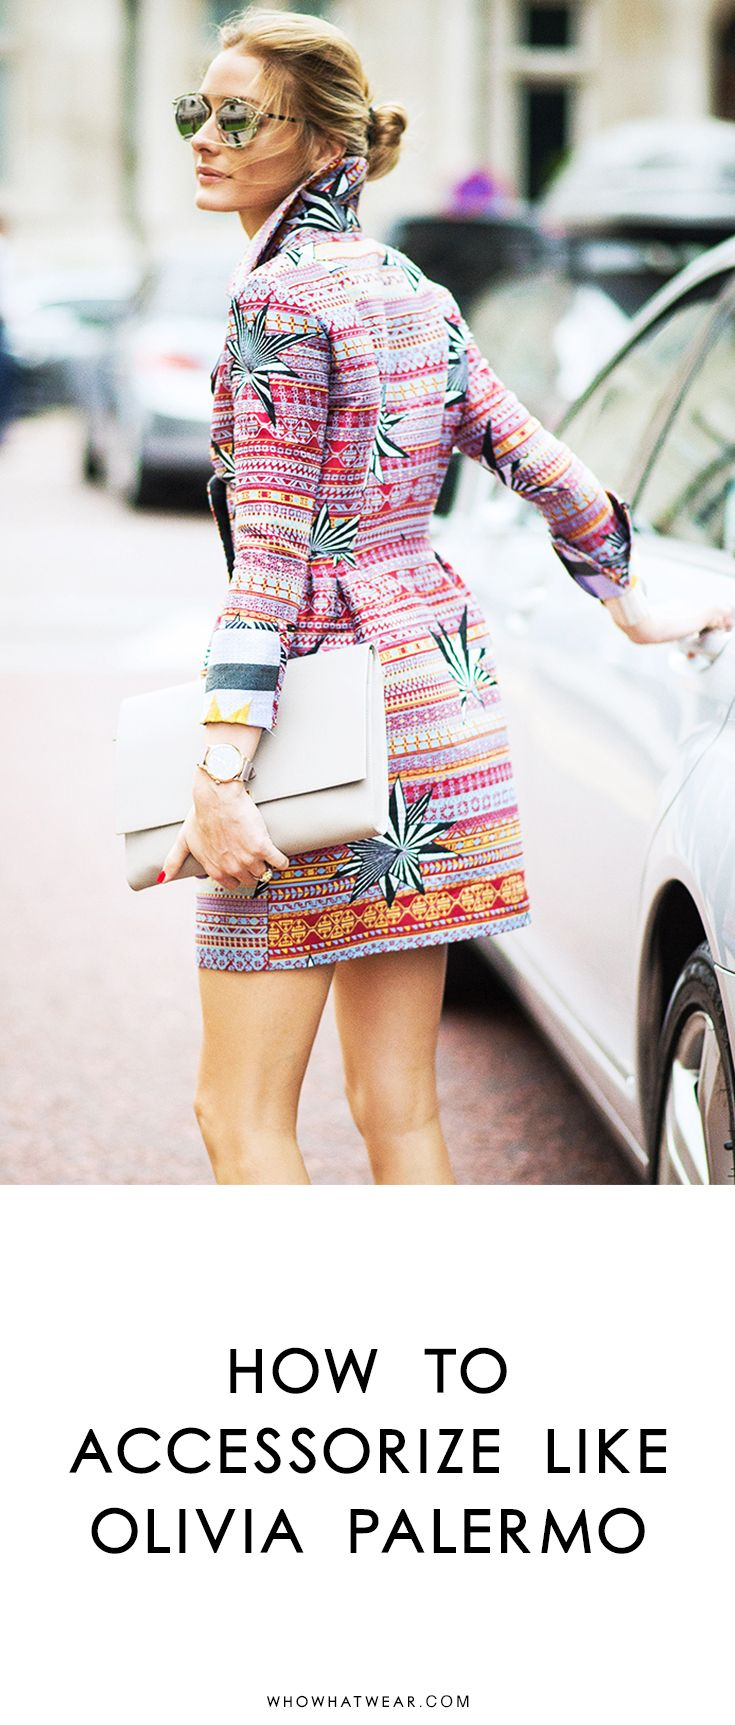 Tips on how to accessorize like street style maven, Olivia Palermo.